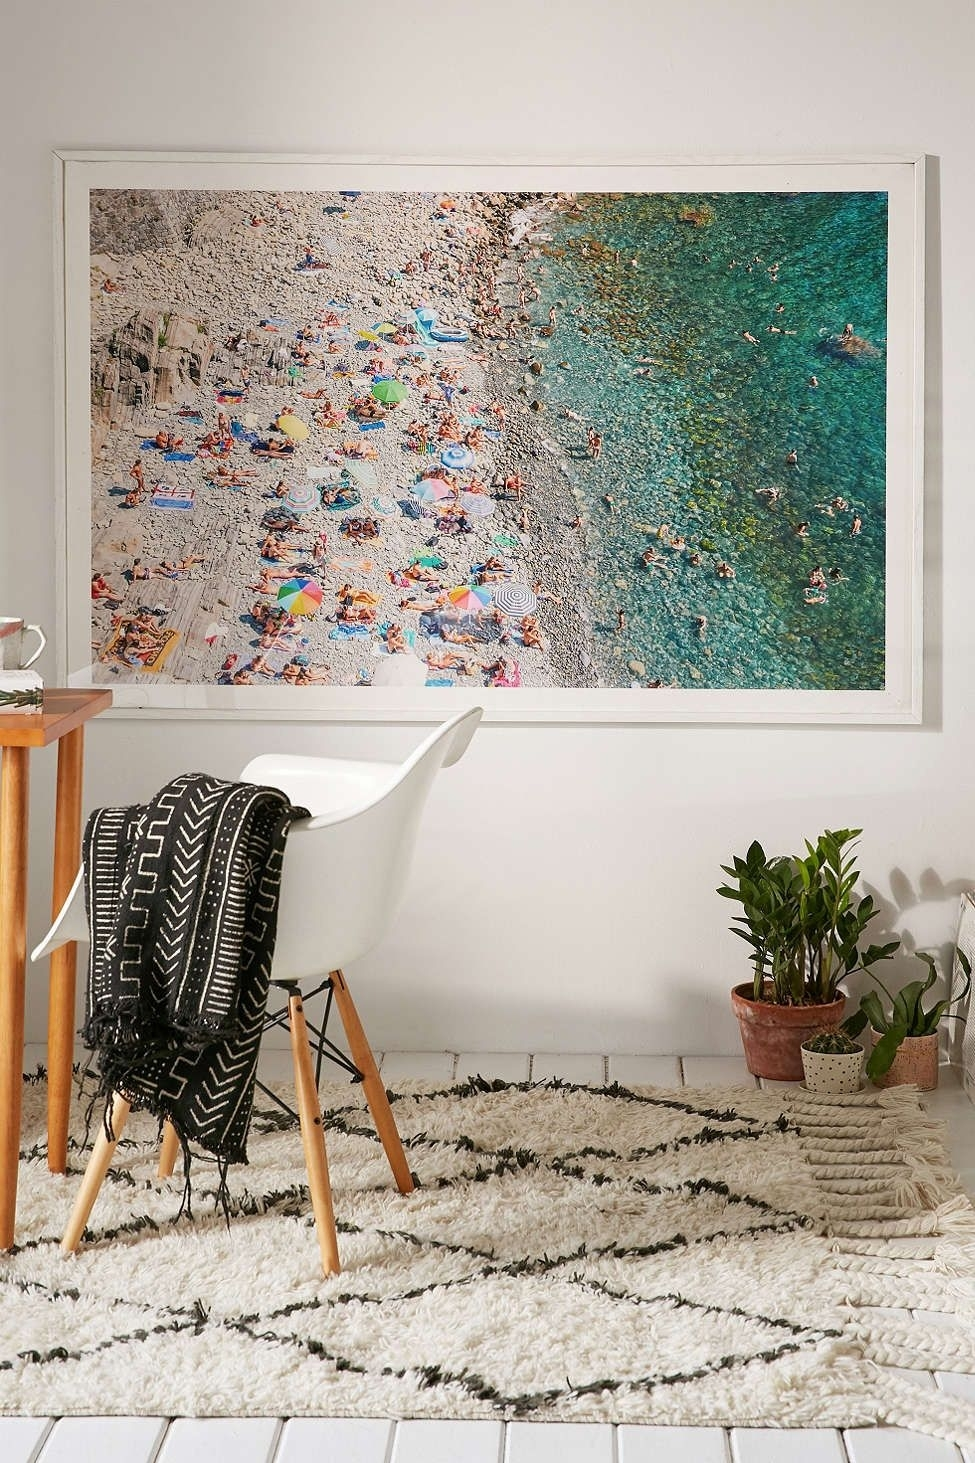 Urban Outfitters Home Spring Summer Collection 2016 Regarding Most Popular Urban Outfitters Wall Art (View 4 of 20)